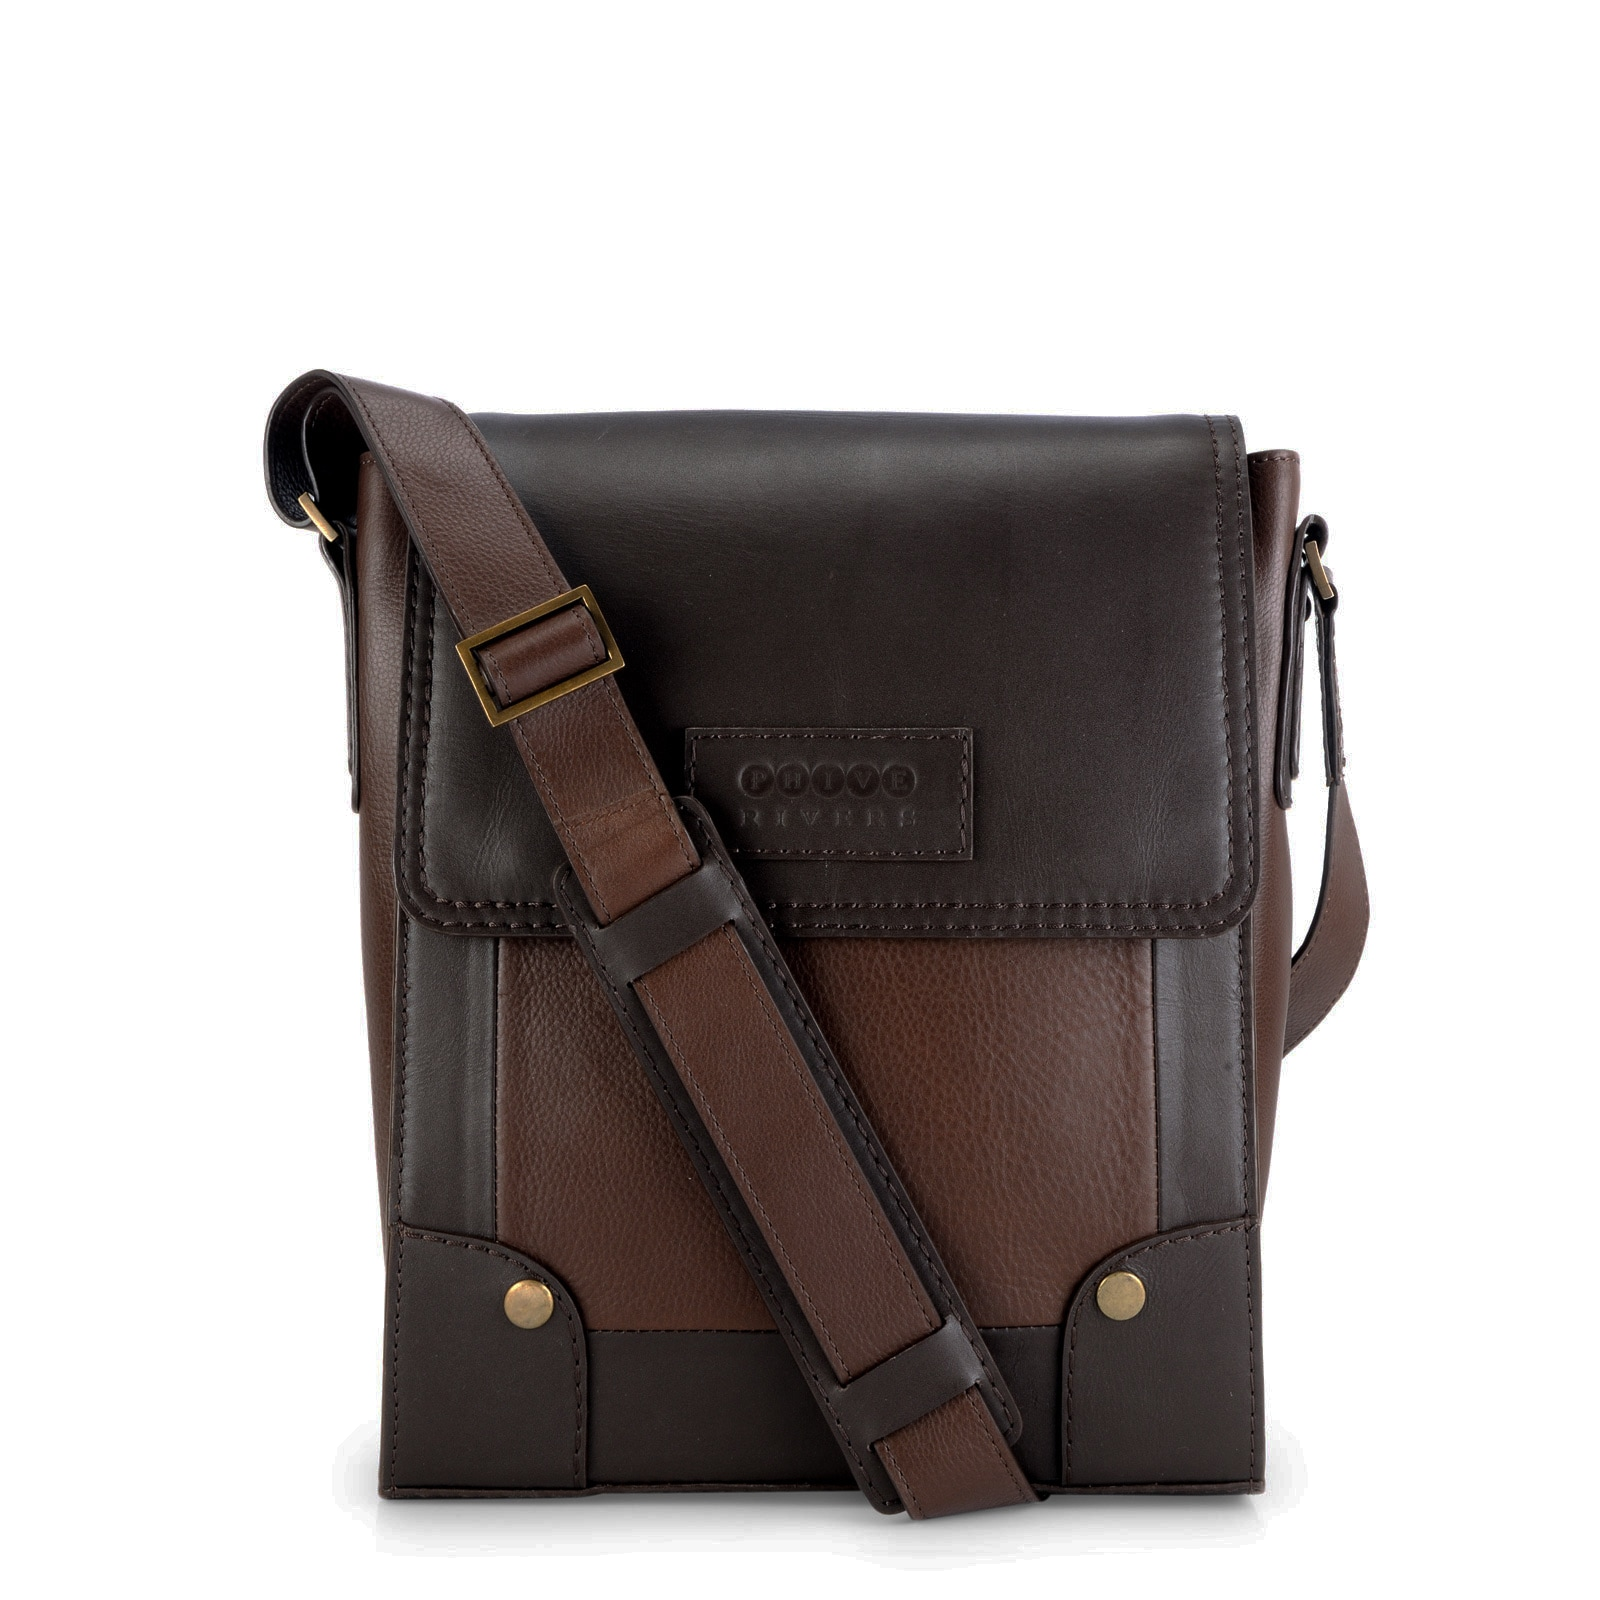 9e18b958a0 Shop Handmade Phive Rivers Leather Messenger Bag (Brown) (Italy) - Free  Shipping Today - Overstock - 13009207